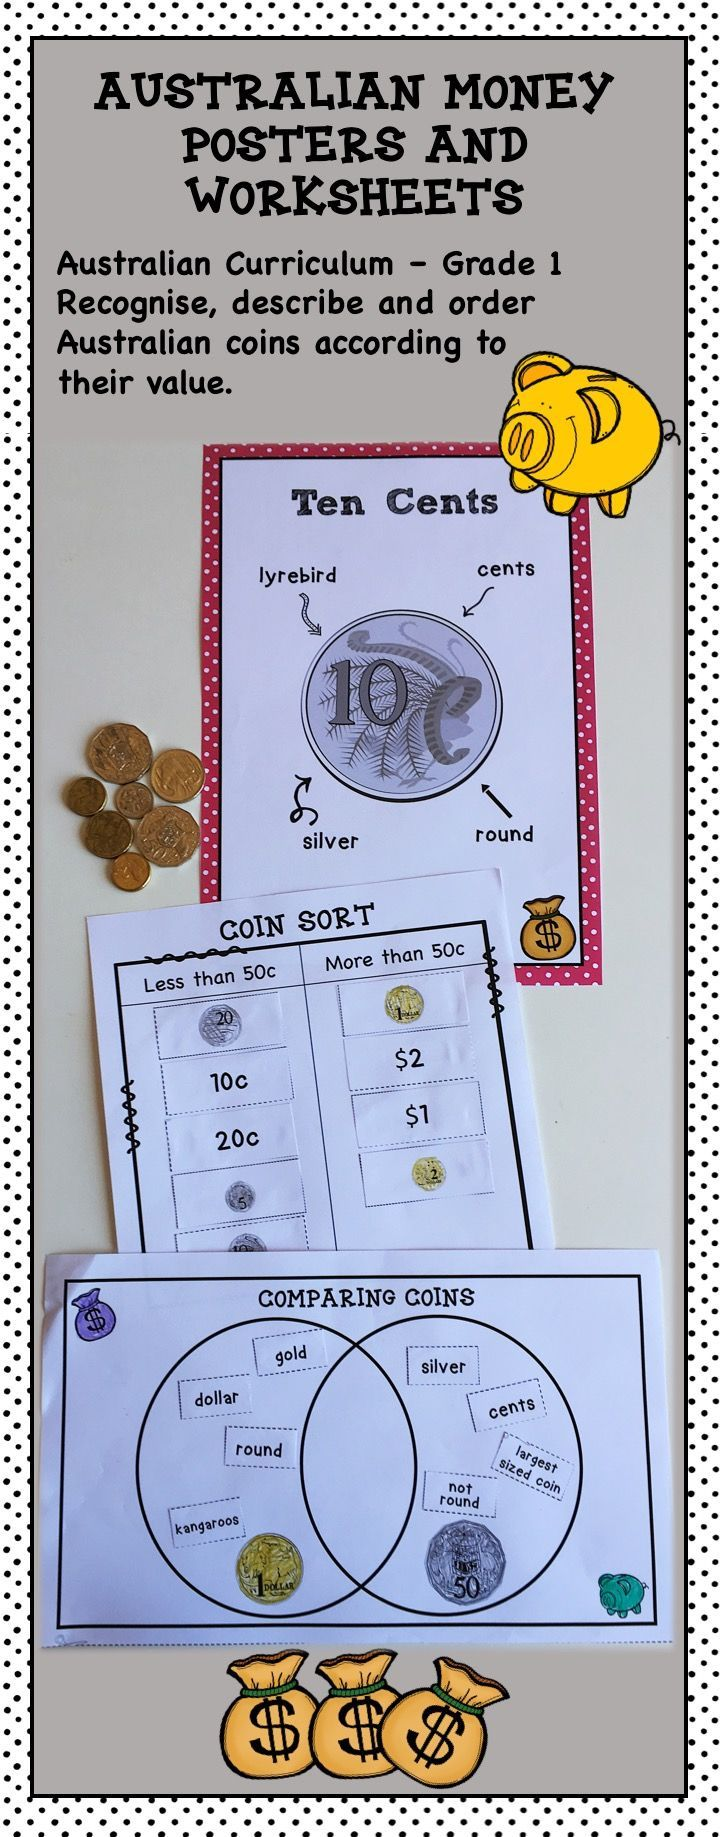 Australian Money Posters And Worksheets Higher Order Thinking Hots Grade 1 Fun And Engaging Worksheets That Ge Money Poster Australian Money Money Activities